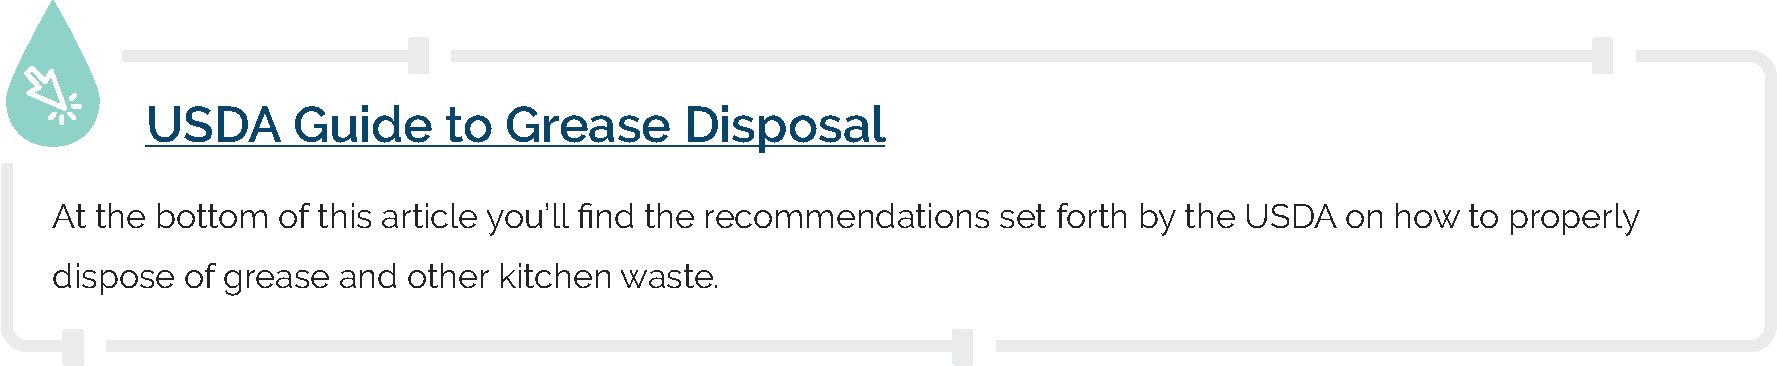 USDA Guide to Grease Disposal